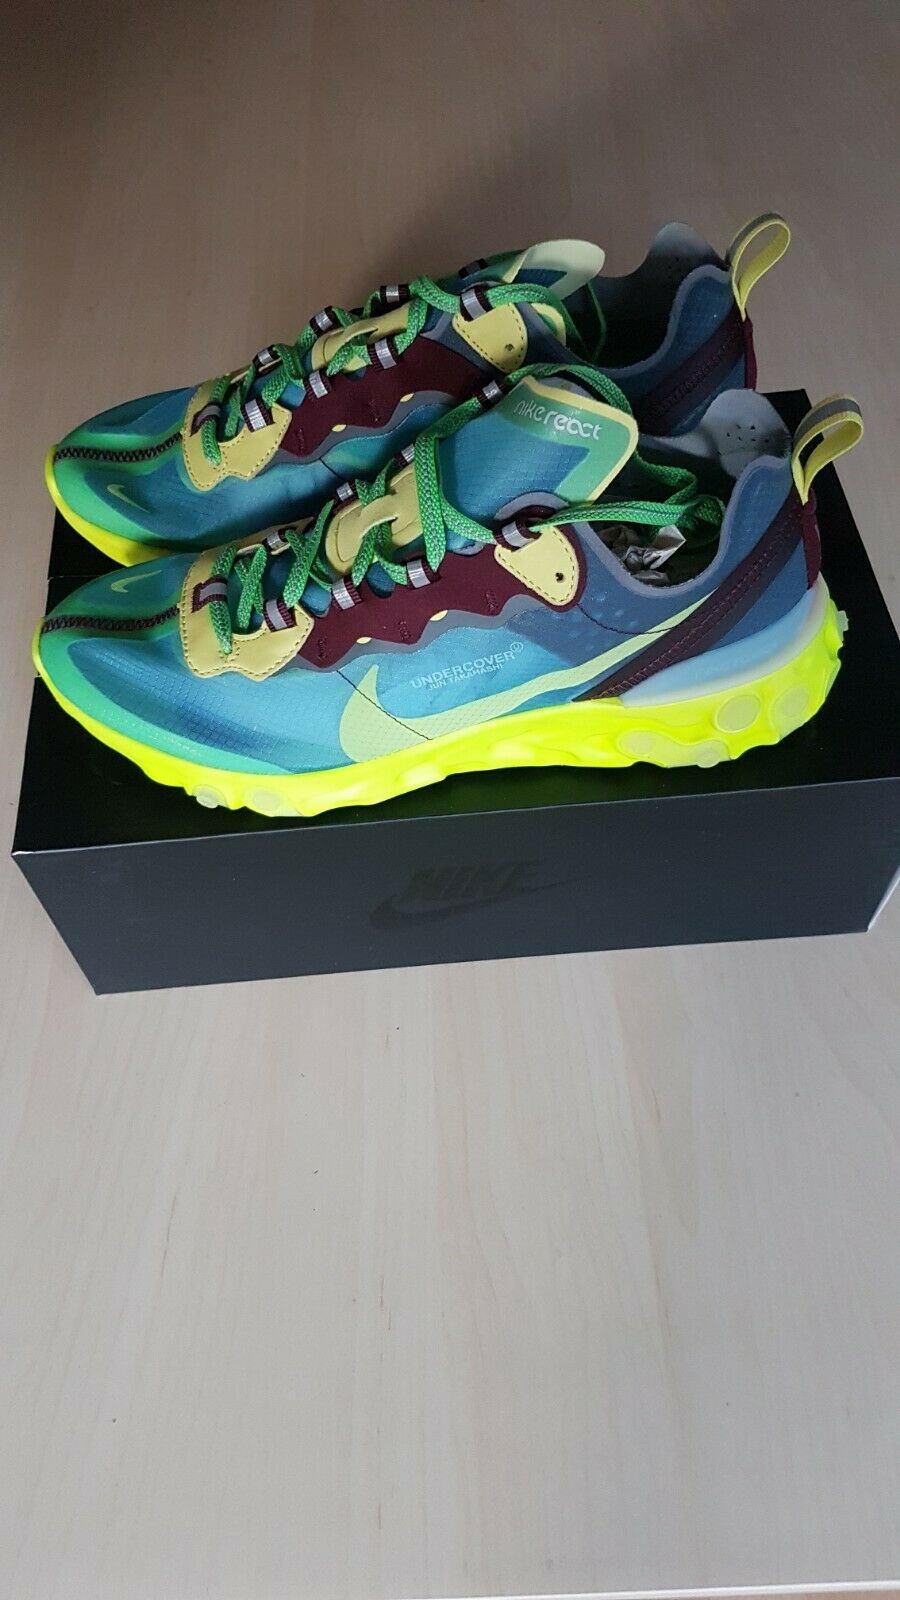 Nike x Undercover React Element 87 Lakeside DSWT US 8, UK 7, EU 41